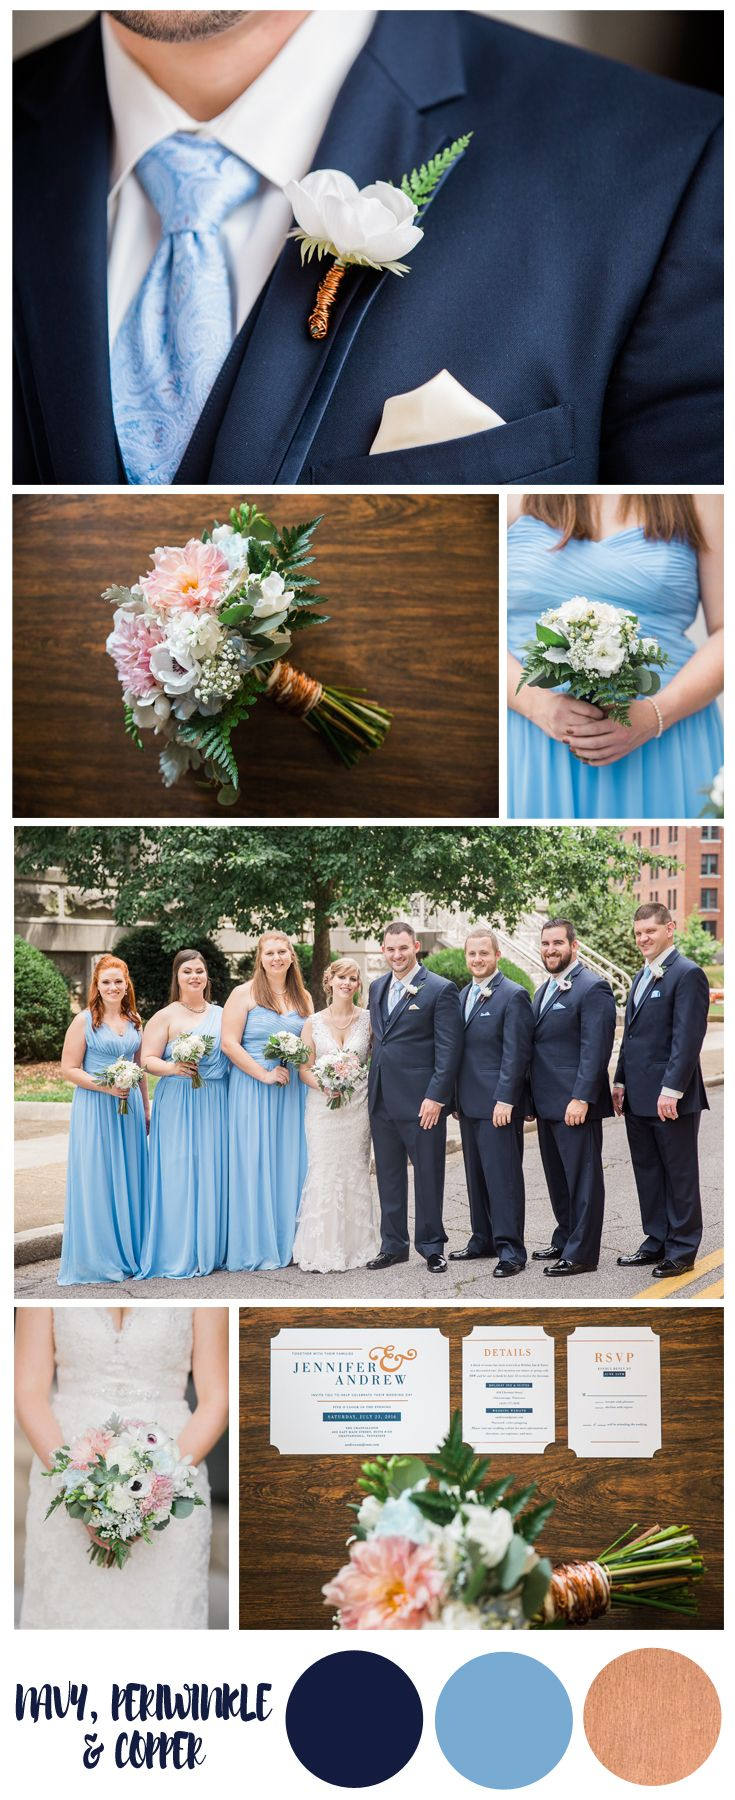 Navy Periwinkle And Copper Wedding Colors Inspiration Perfect For Winter Spring